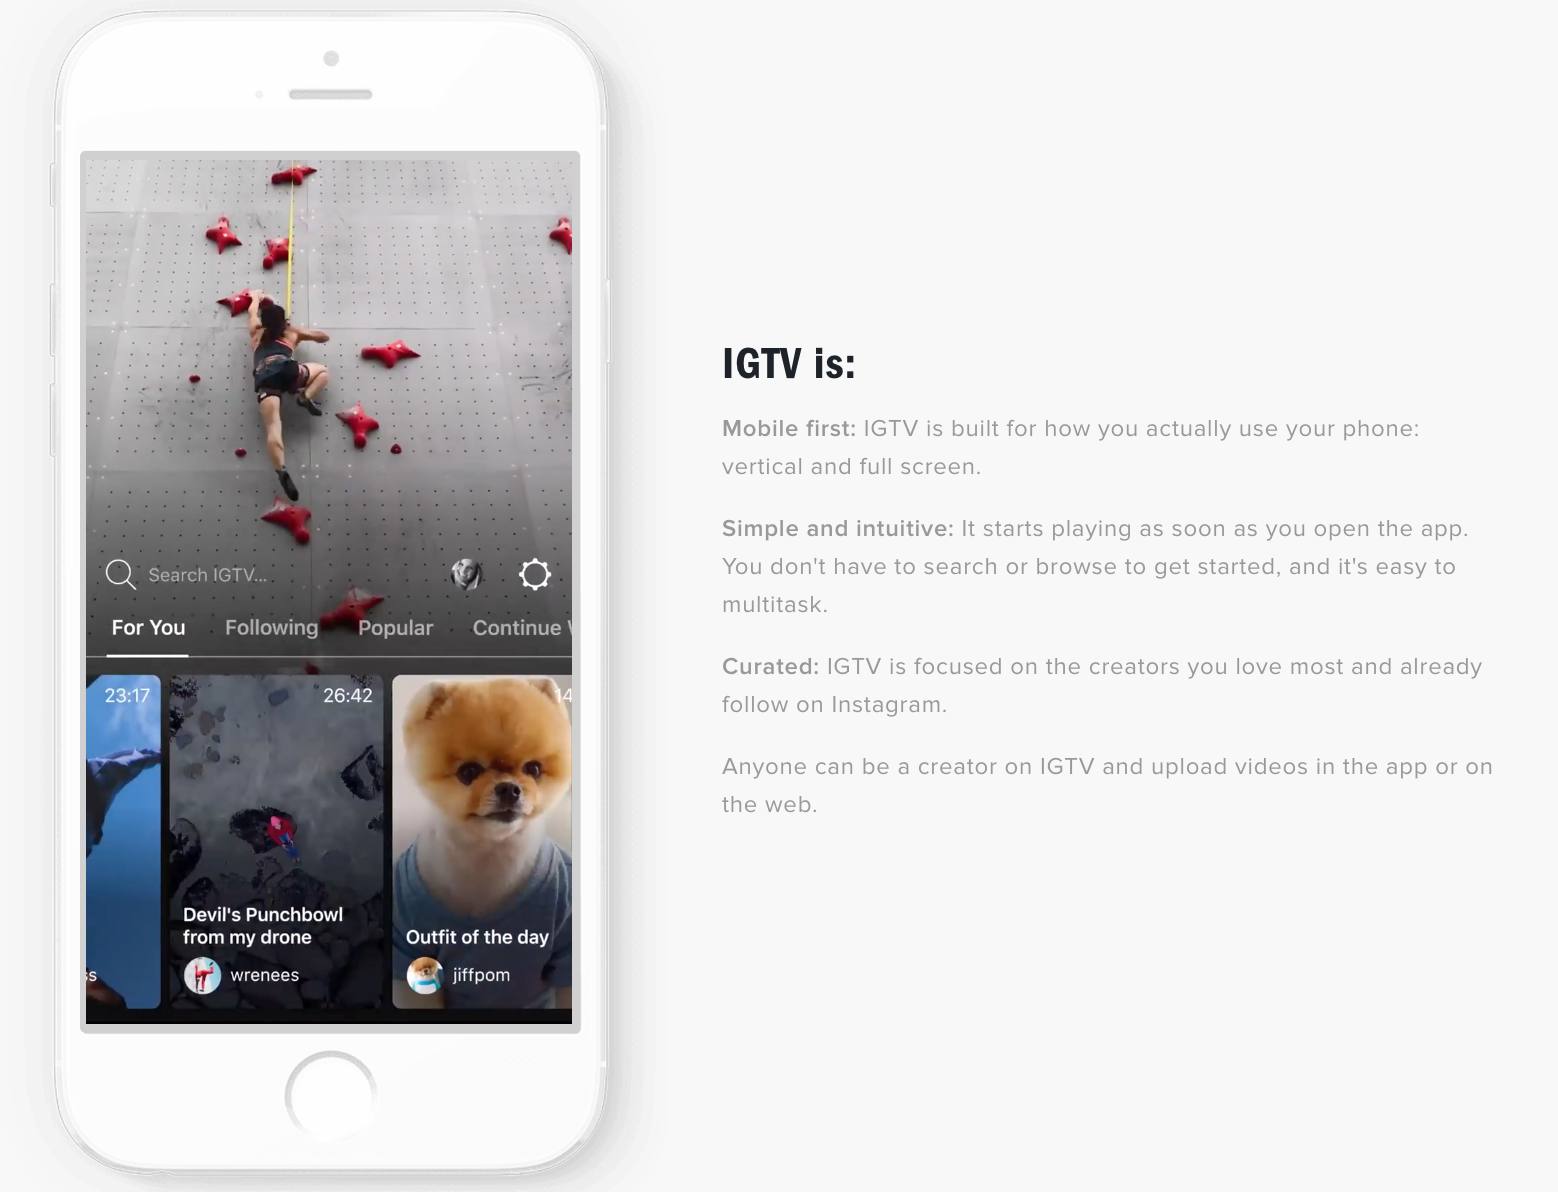 Instagram announces IGTV - a new app for watching long-form videos